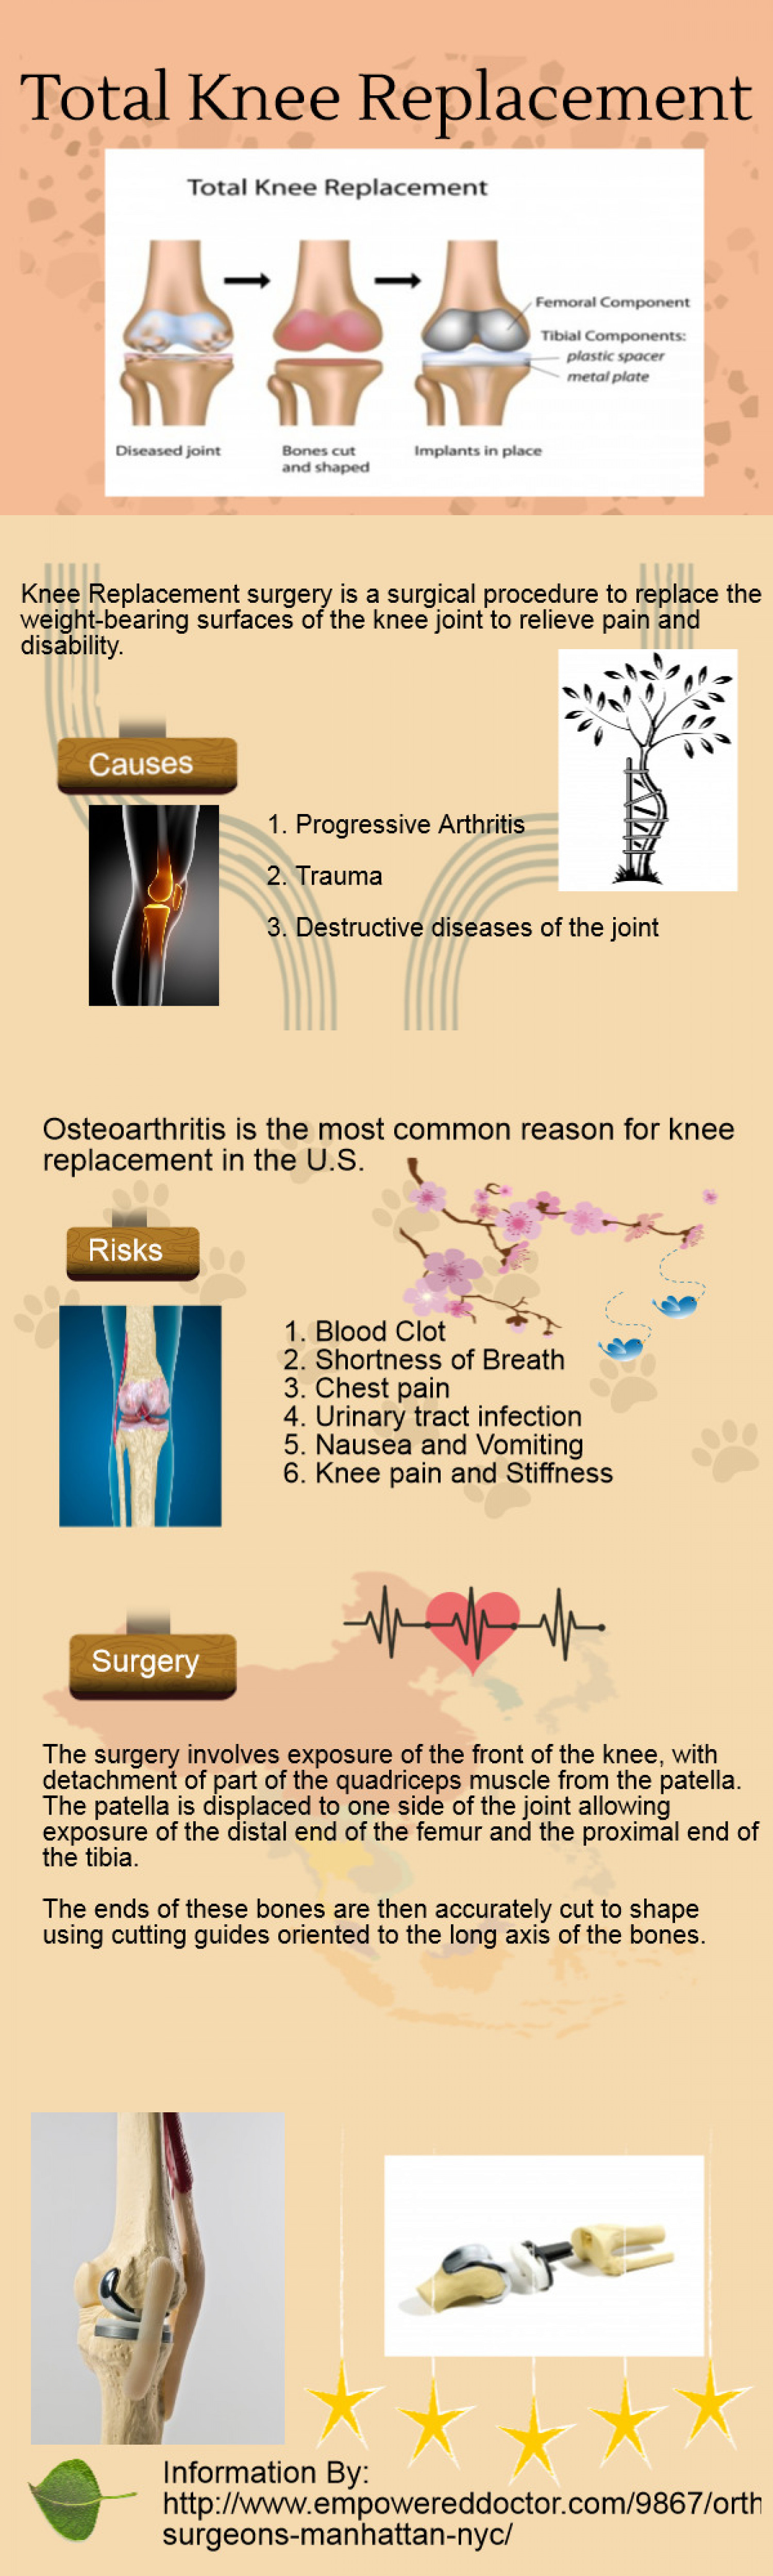 Total Knee Replacement Infographic